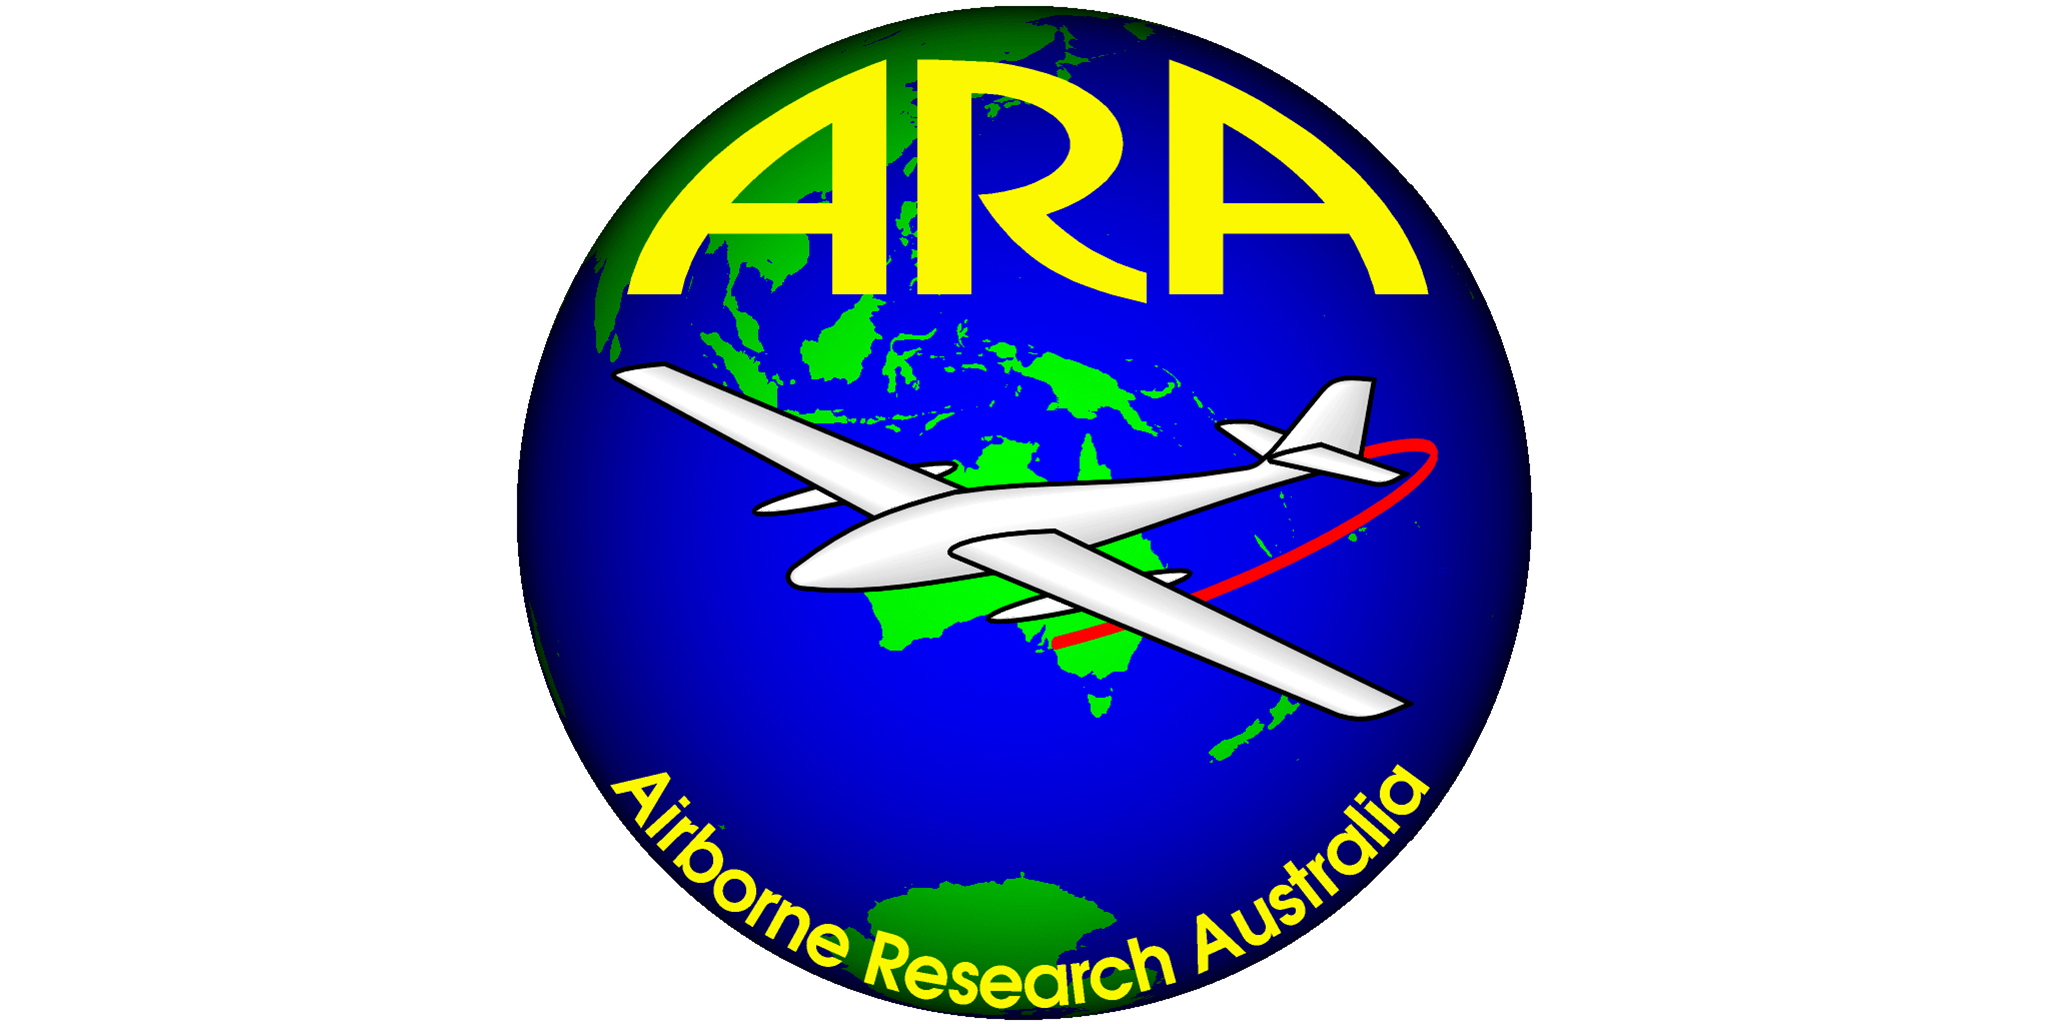 Airborne Research Australia